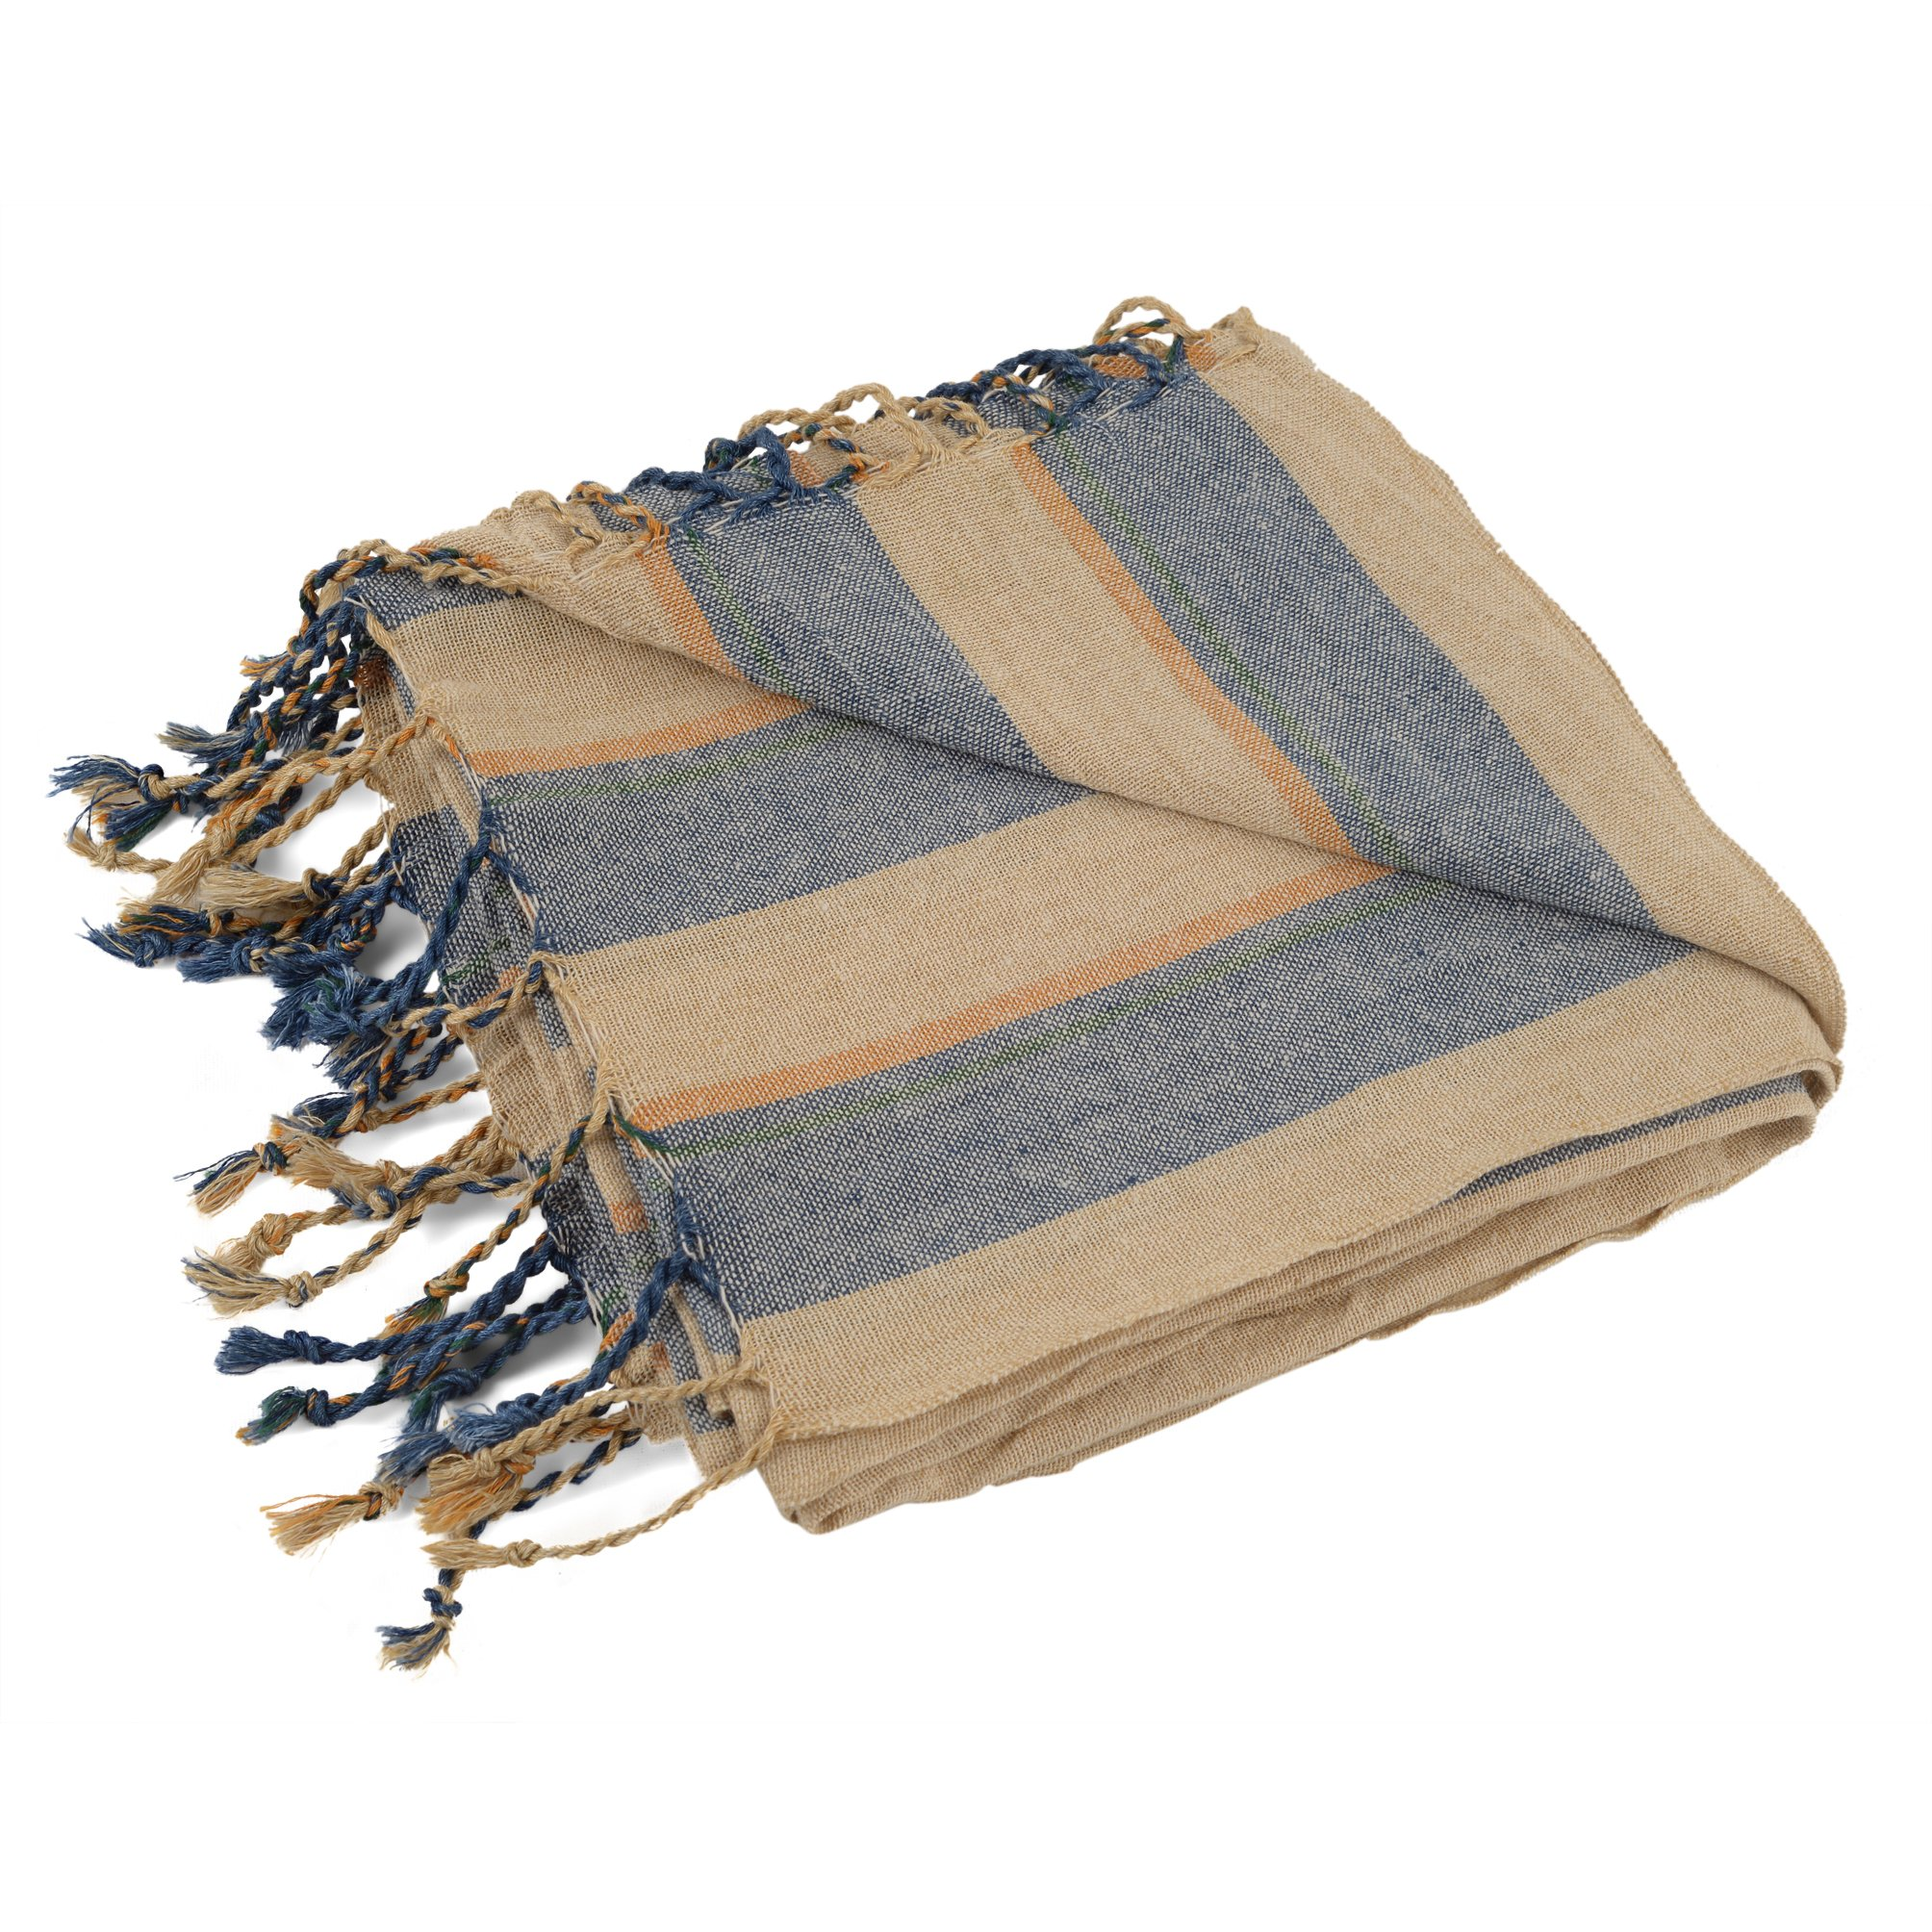 Raven's Landing Turkish Towel, Natural Linen Beach or Bath Towel, 38x79in, Large, Authentic Hamam Peshtemal, Lightweight, Quick-Drying, Fitness or Travel Perfect, (Sea Bluez)